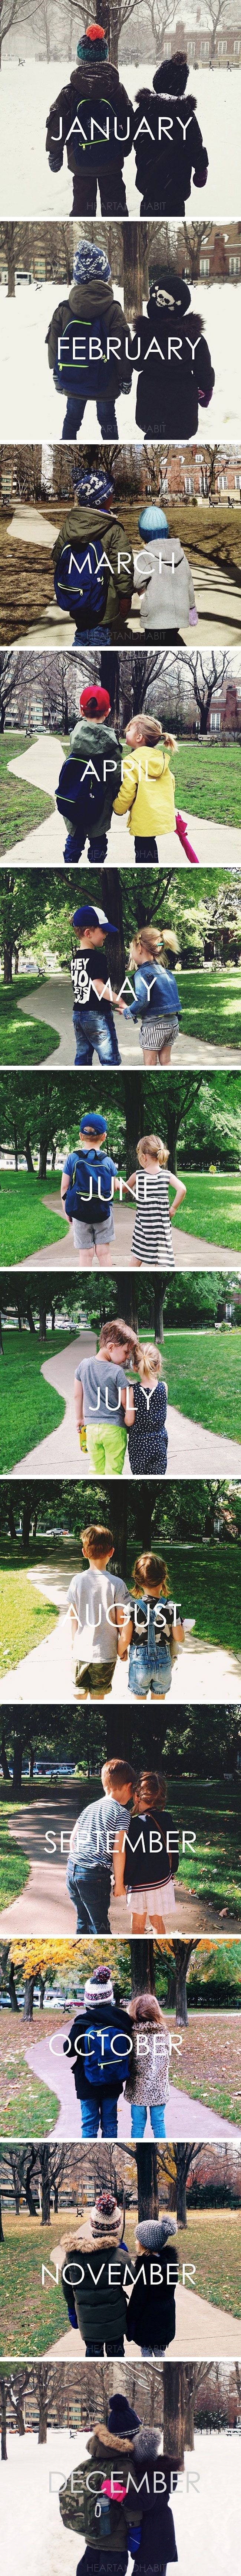 Take a picture in the same spot every month and then make a calendar out of it! This is really cute, the love is strong with these siblings